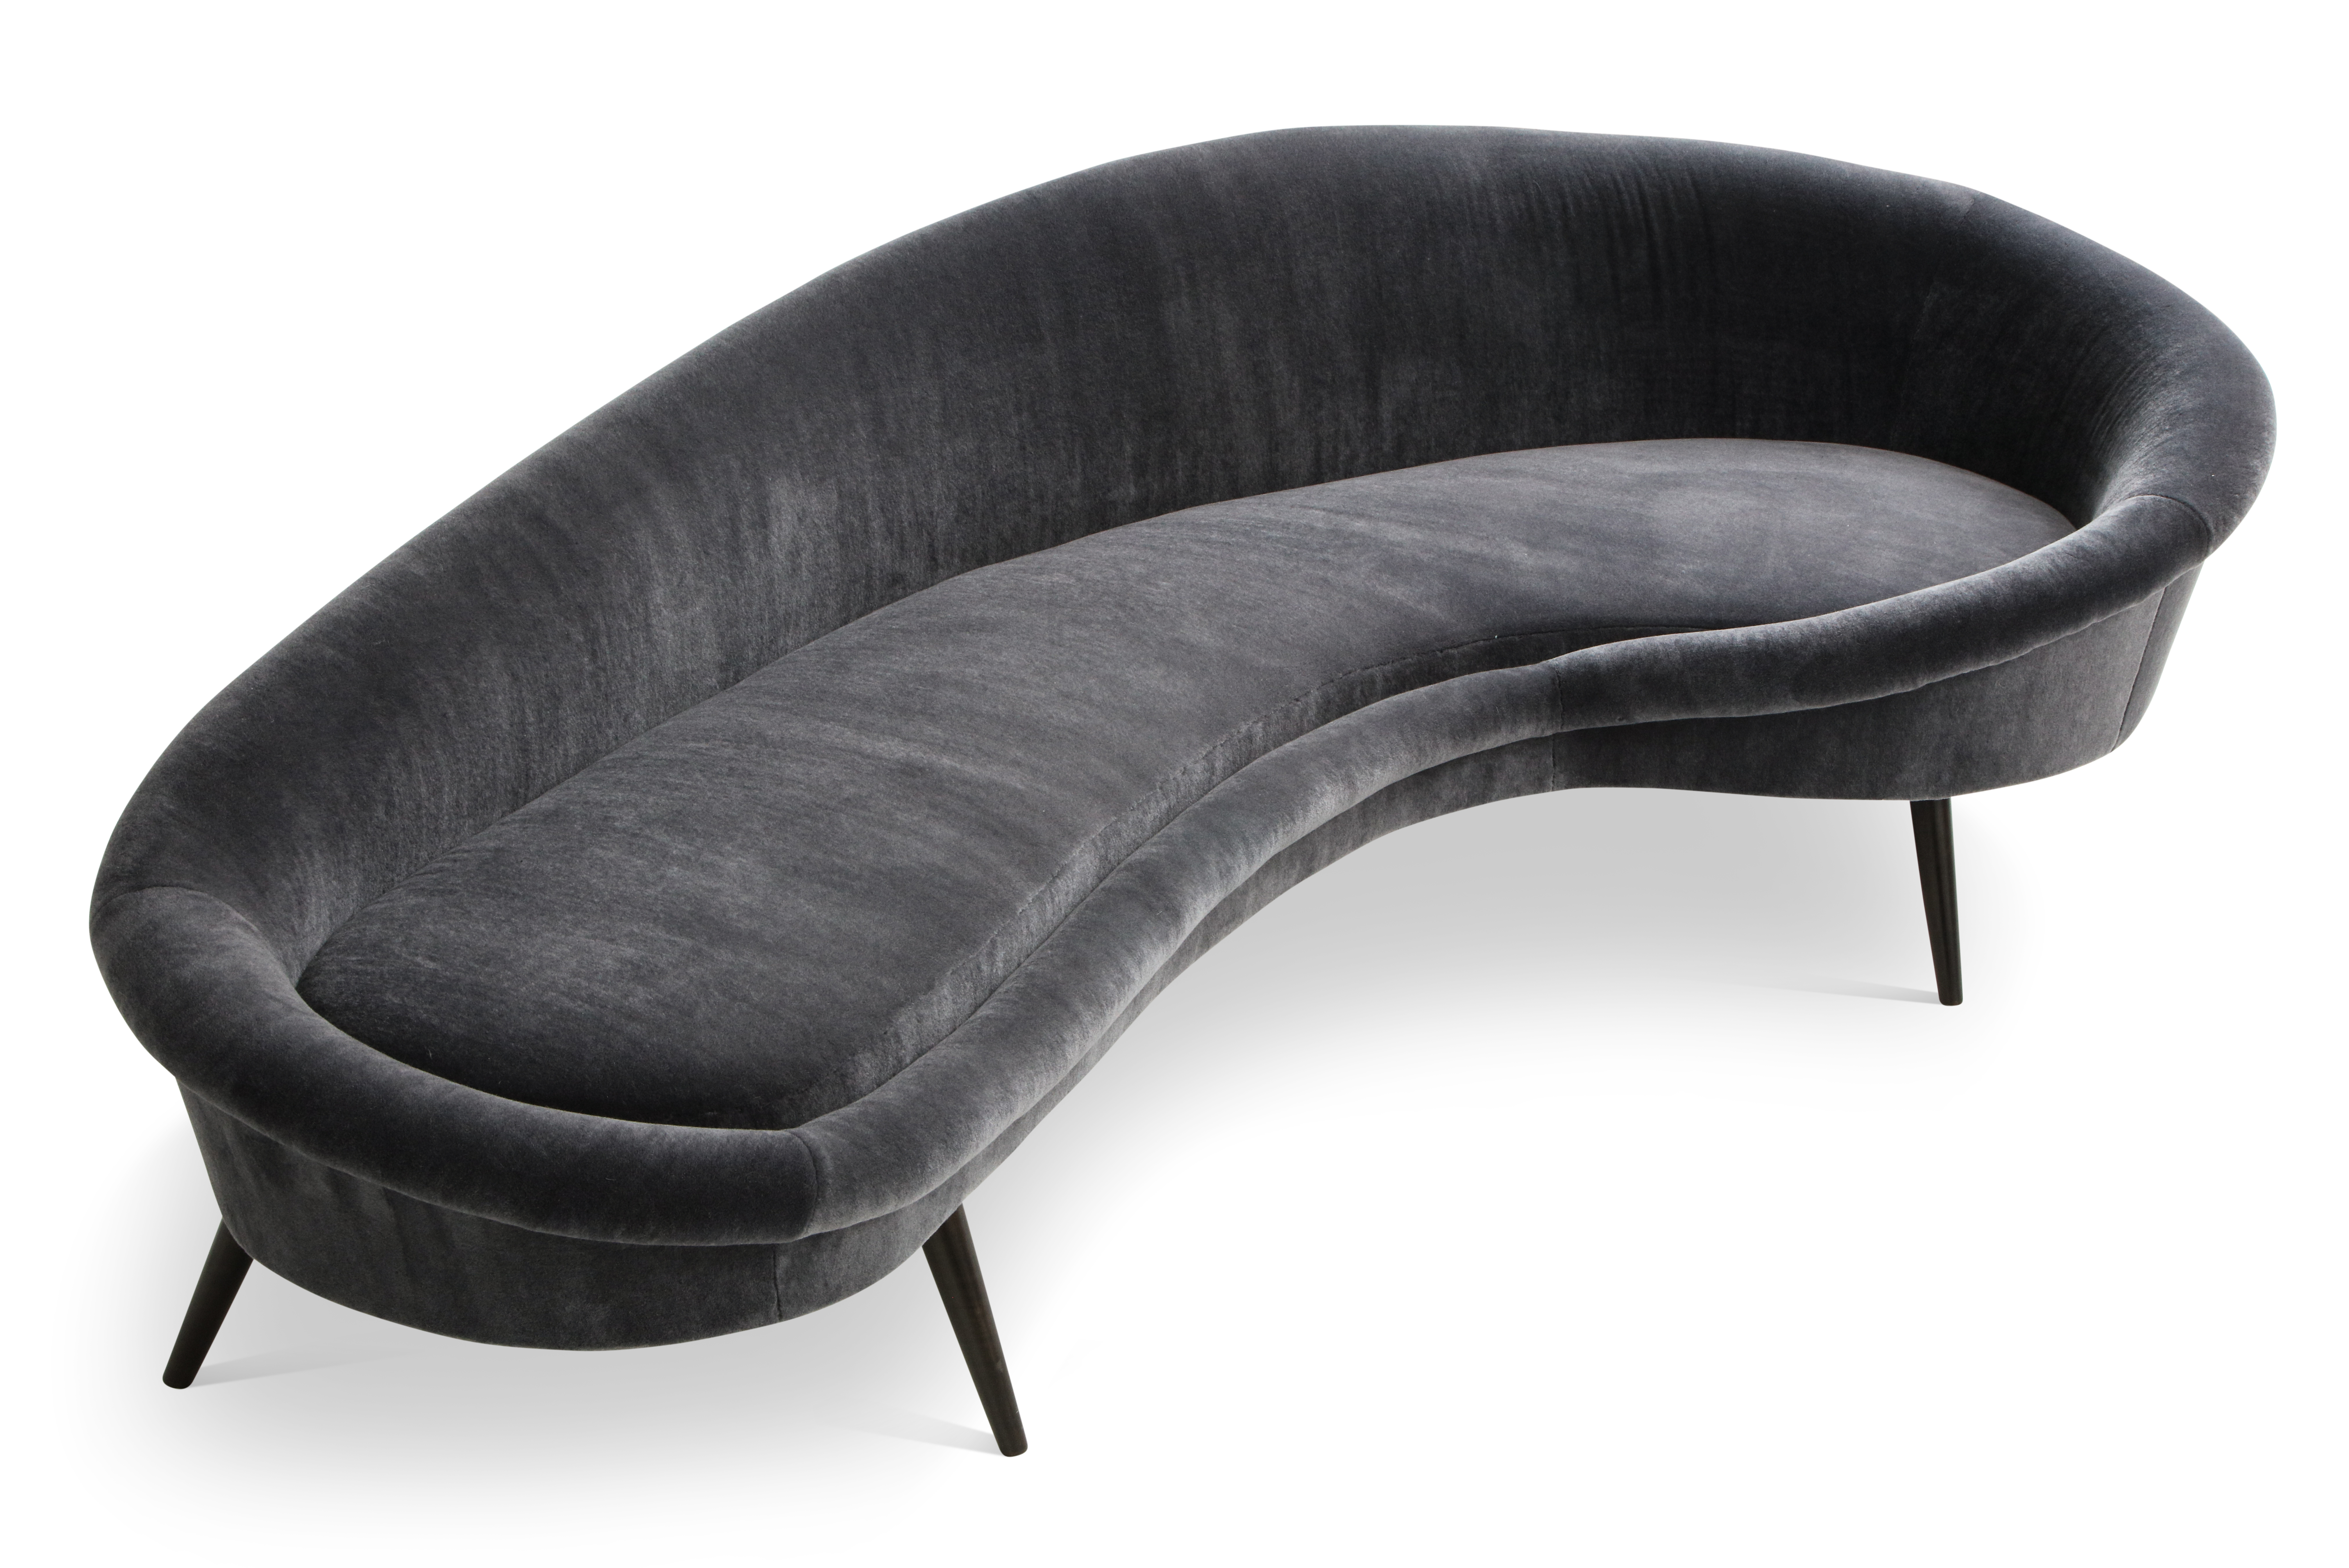 Mid Century Style Curved Sofa, Organic-form. Re-upholstered